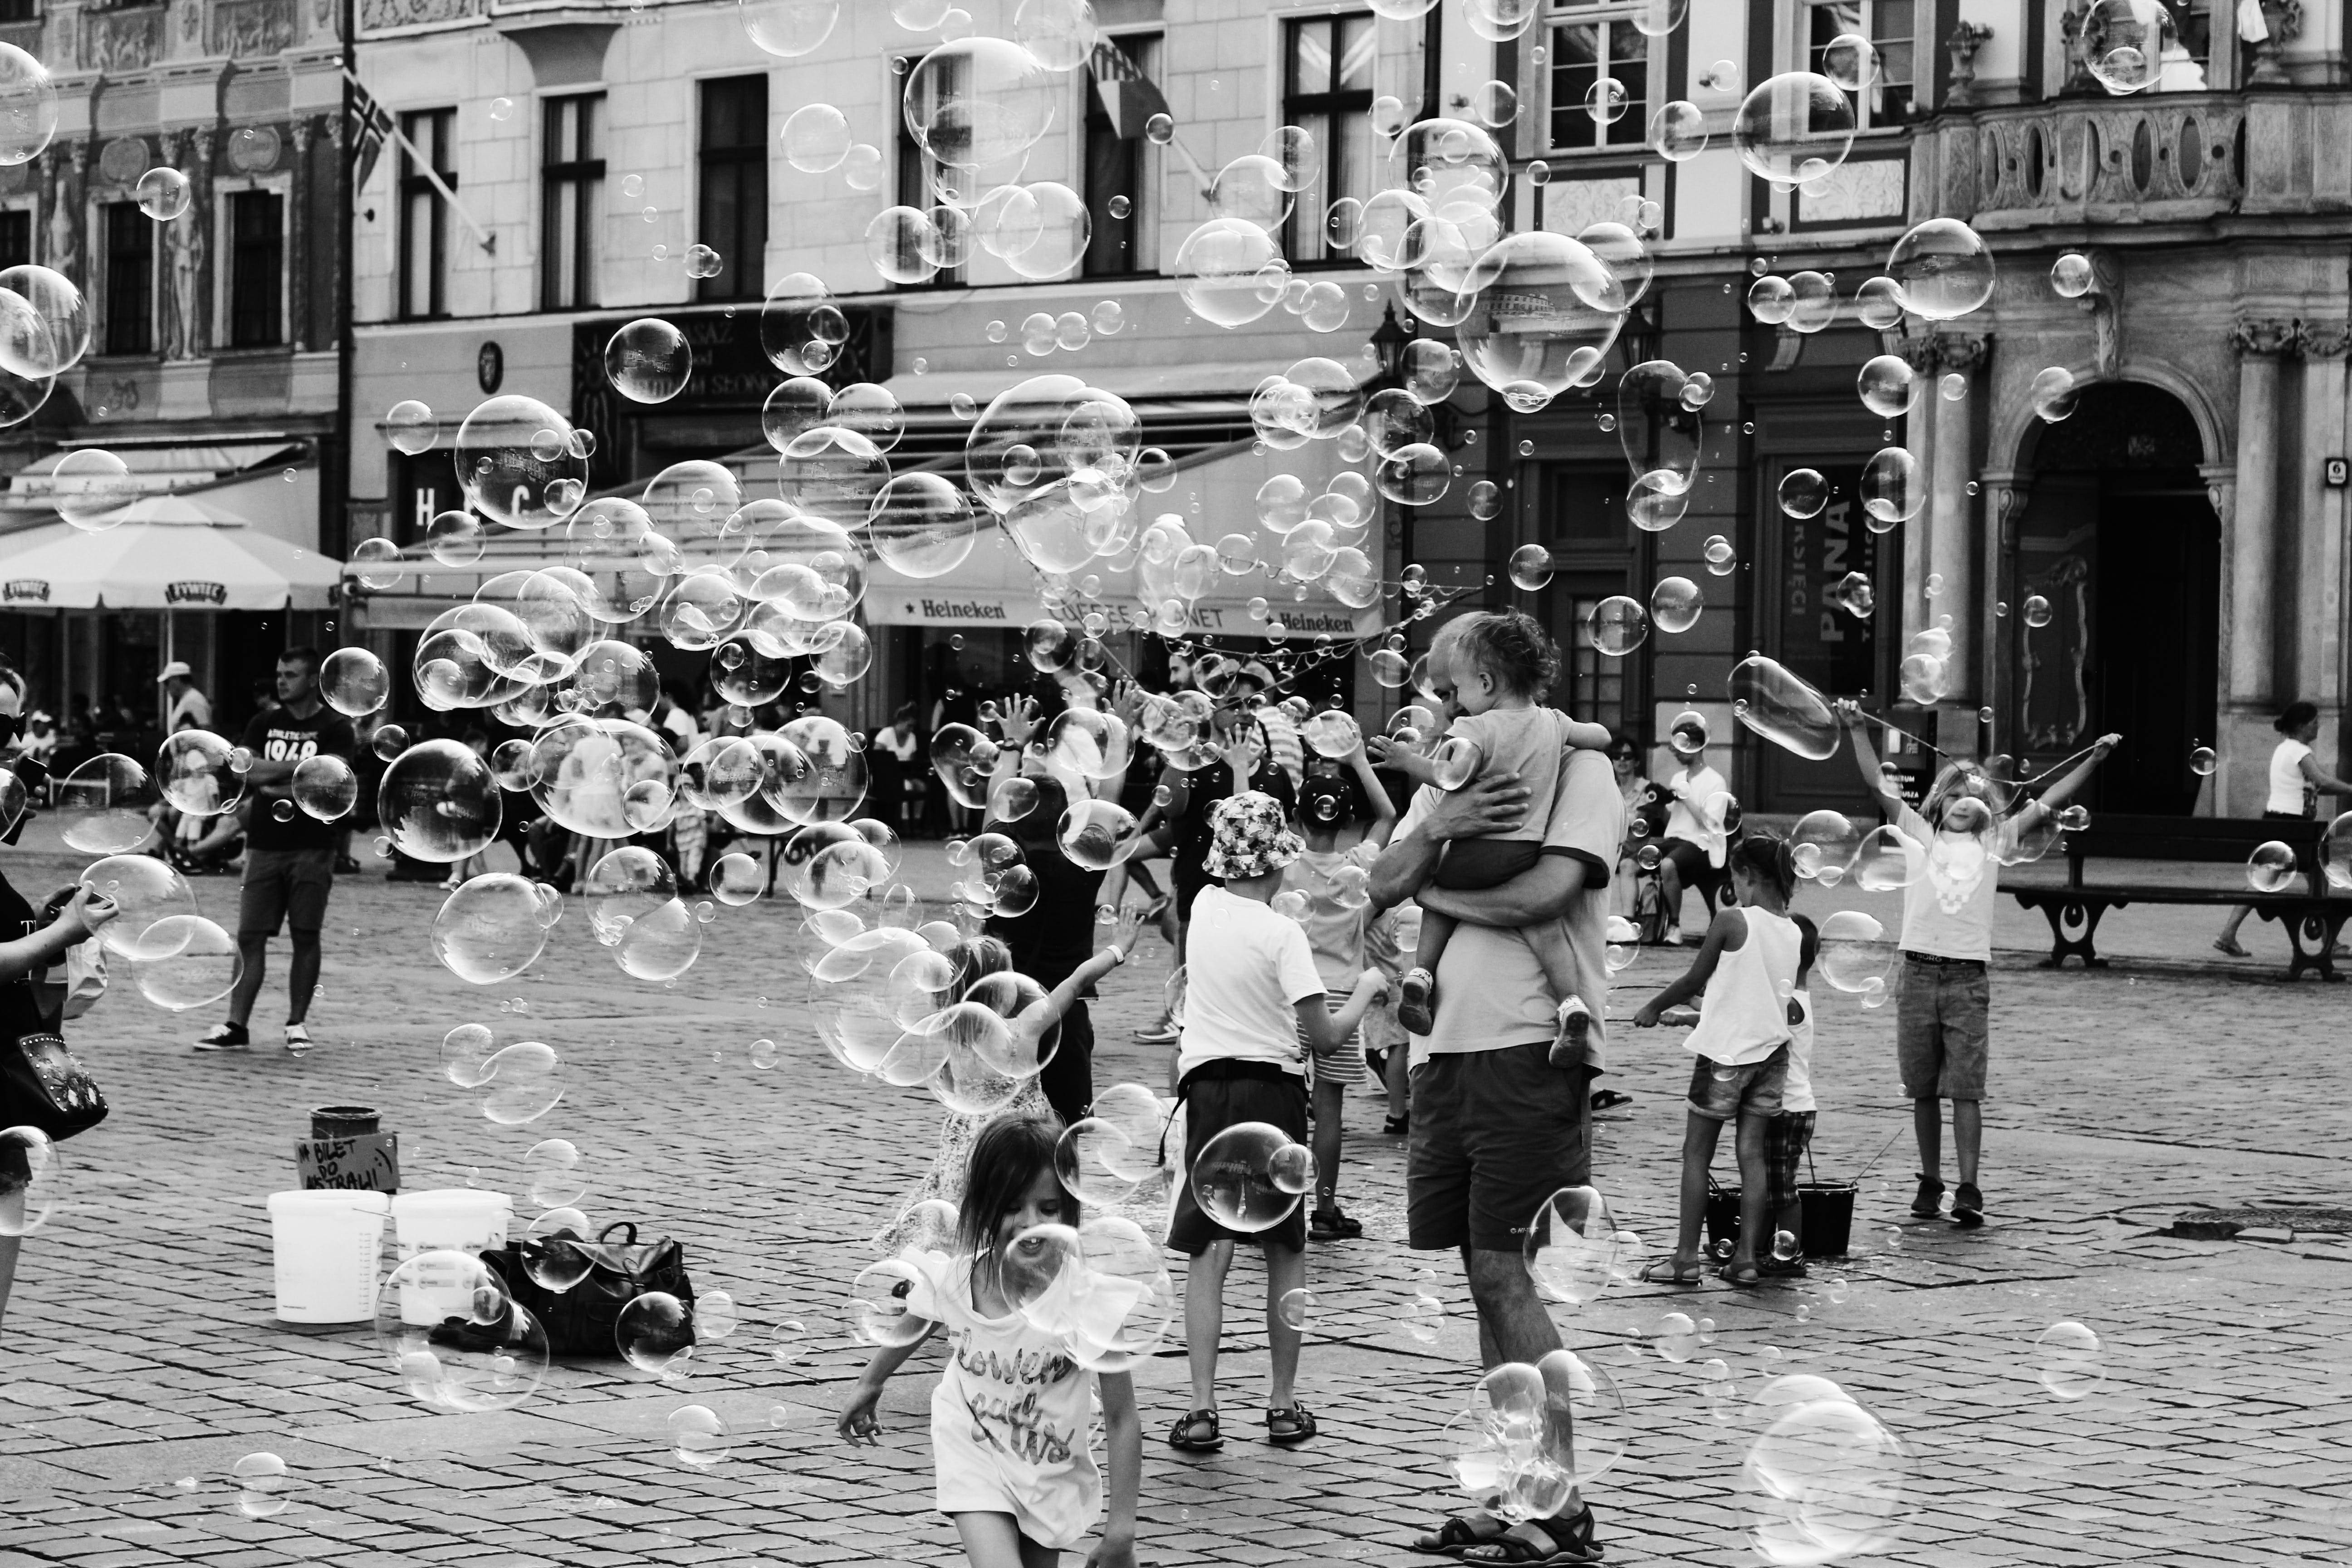 Grayscale Photo of Children and Parents Outdoors With Bubbles